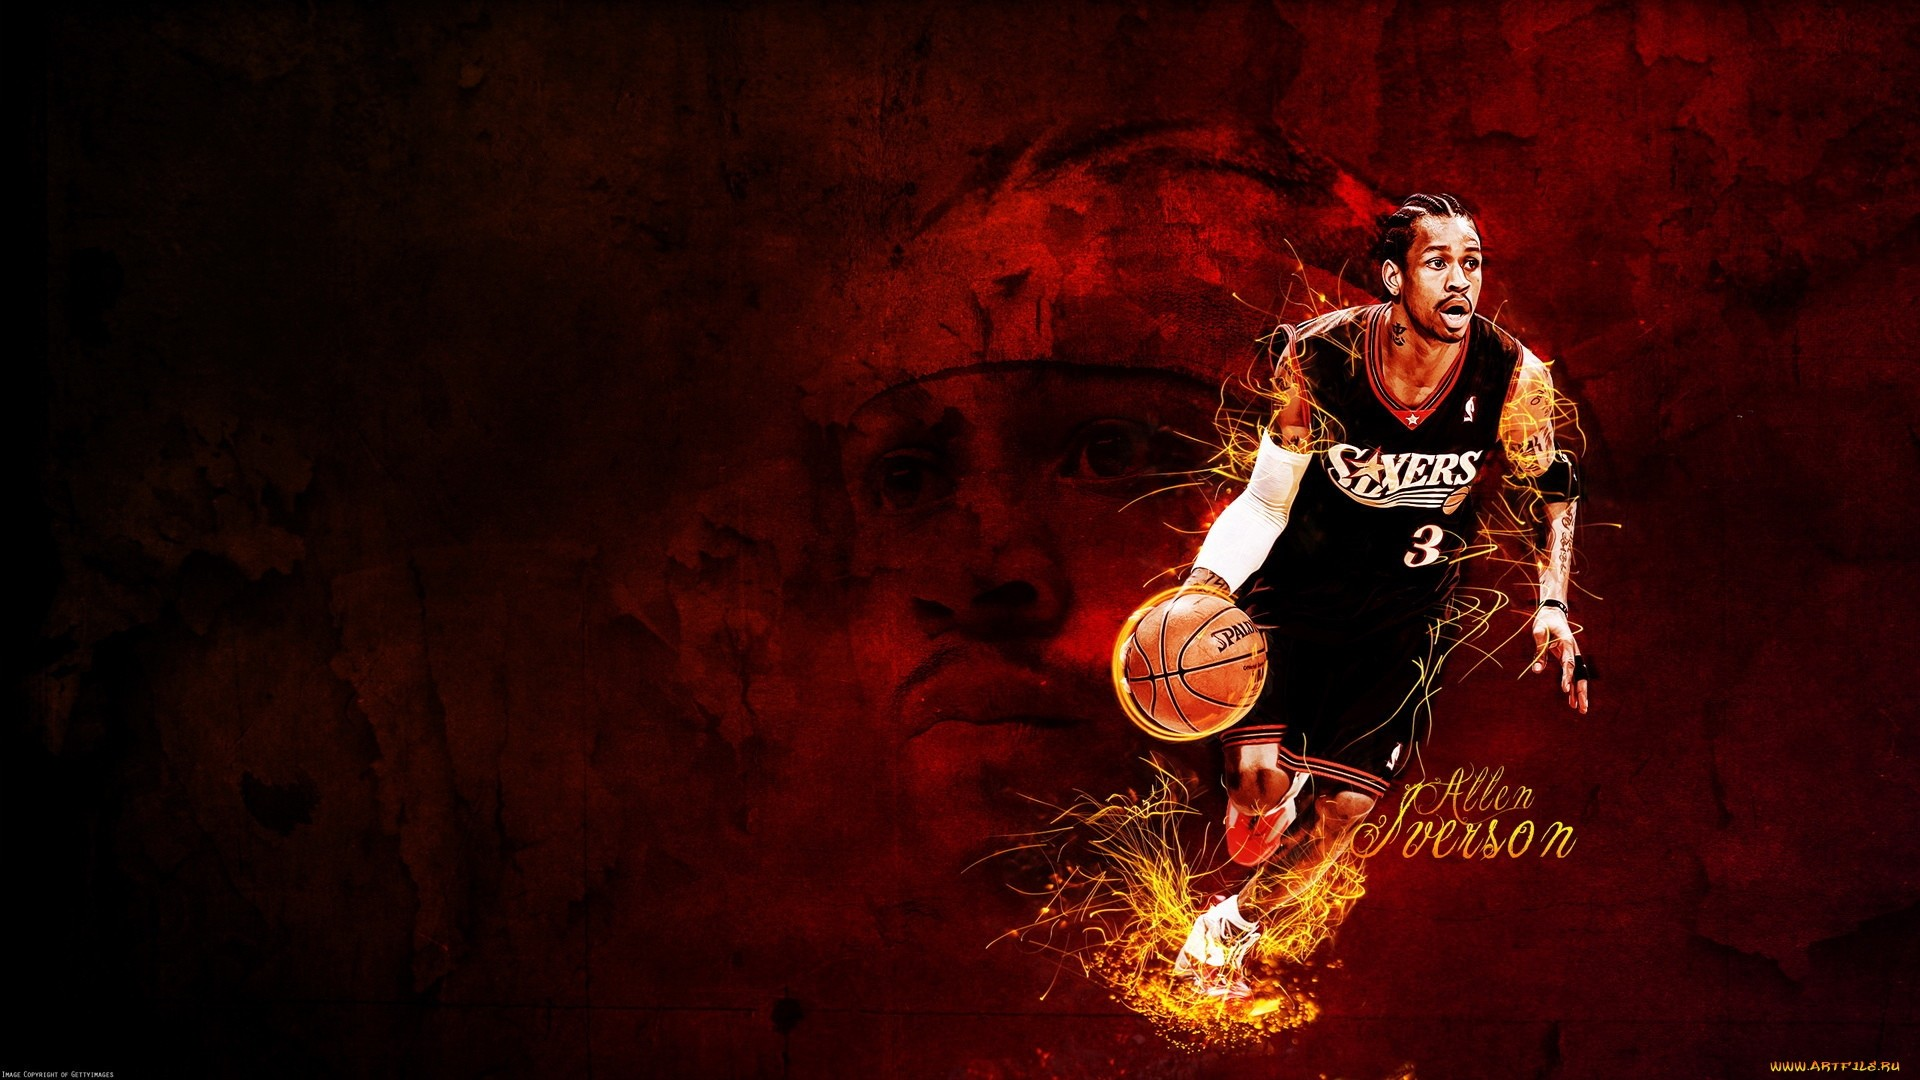 Allen Iverson Free Wallpaper and Background